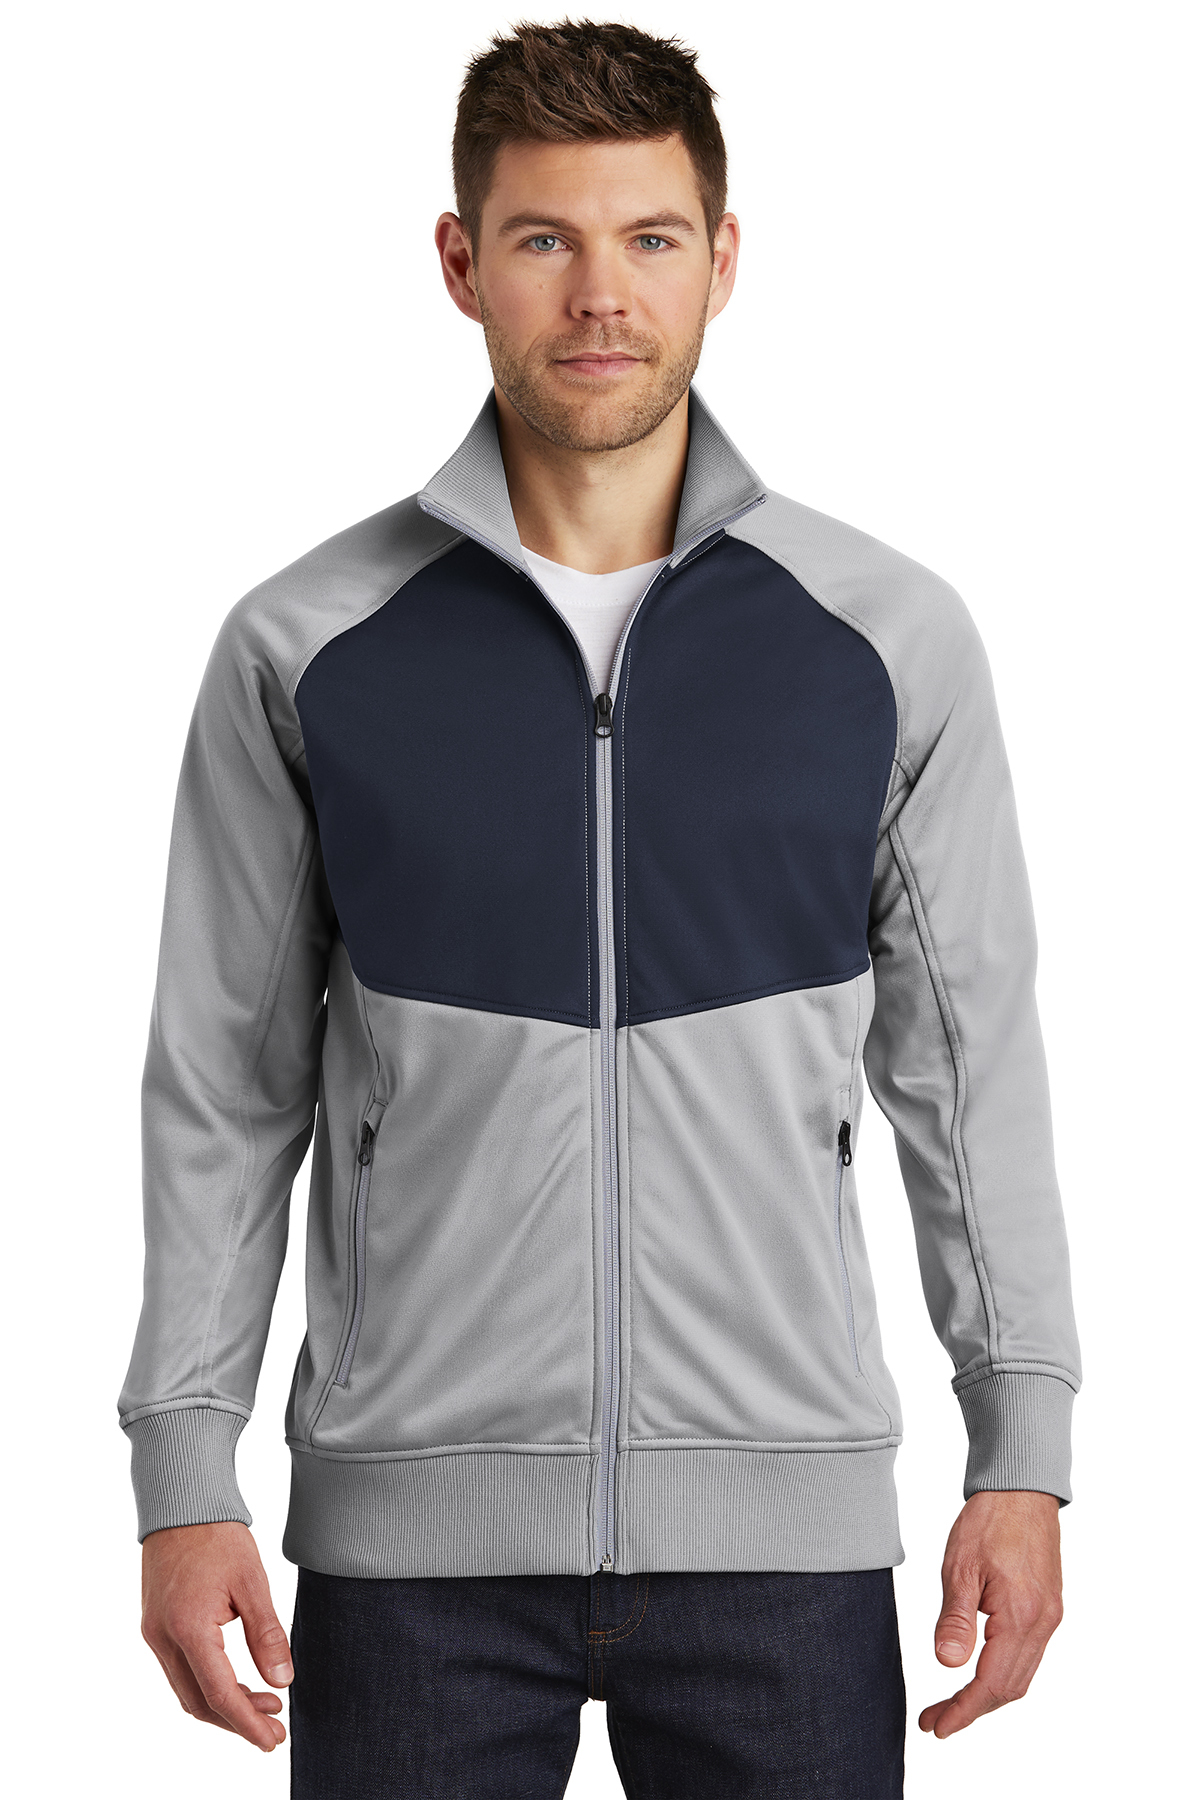 The North Face NF0A3SEW - Men's Tech Full-Zip Fleece Jacket